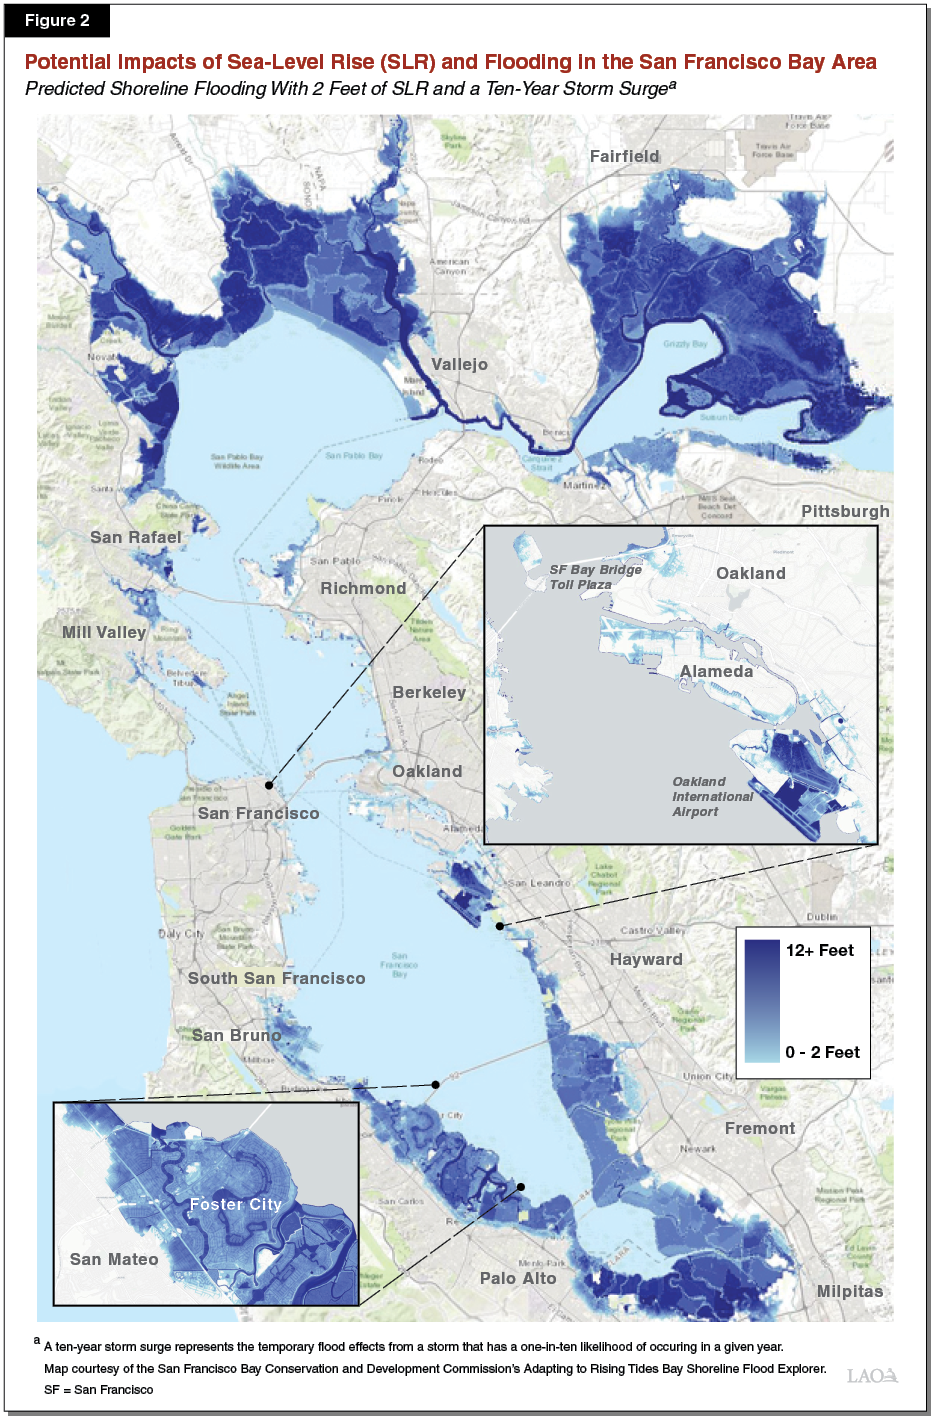 Potential Impacts of Sea-Level Rise (SLR) and Flooding in the San Francisco Bay Area: https://lao.ca.gov/reports/2019/4121/Fig2.png